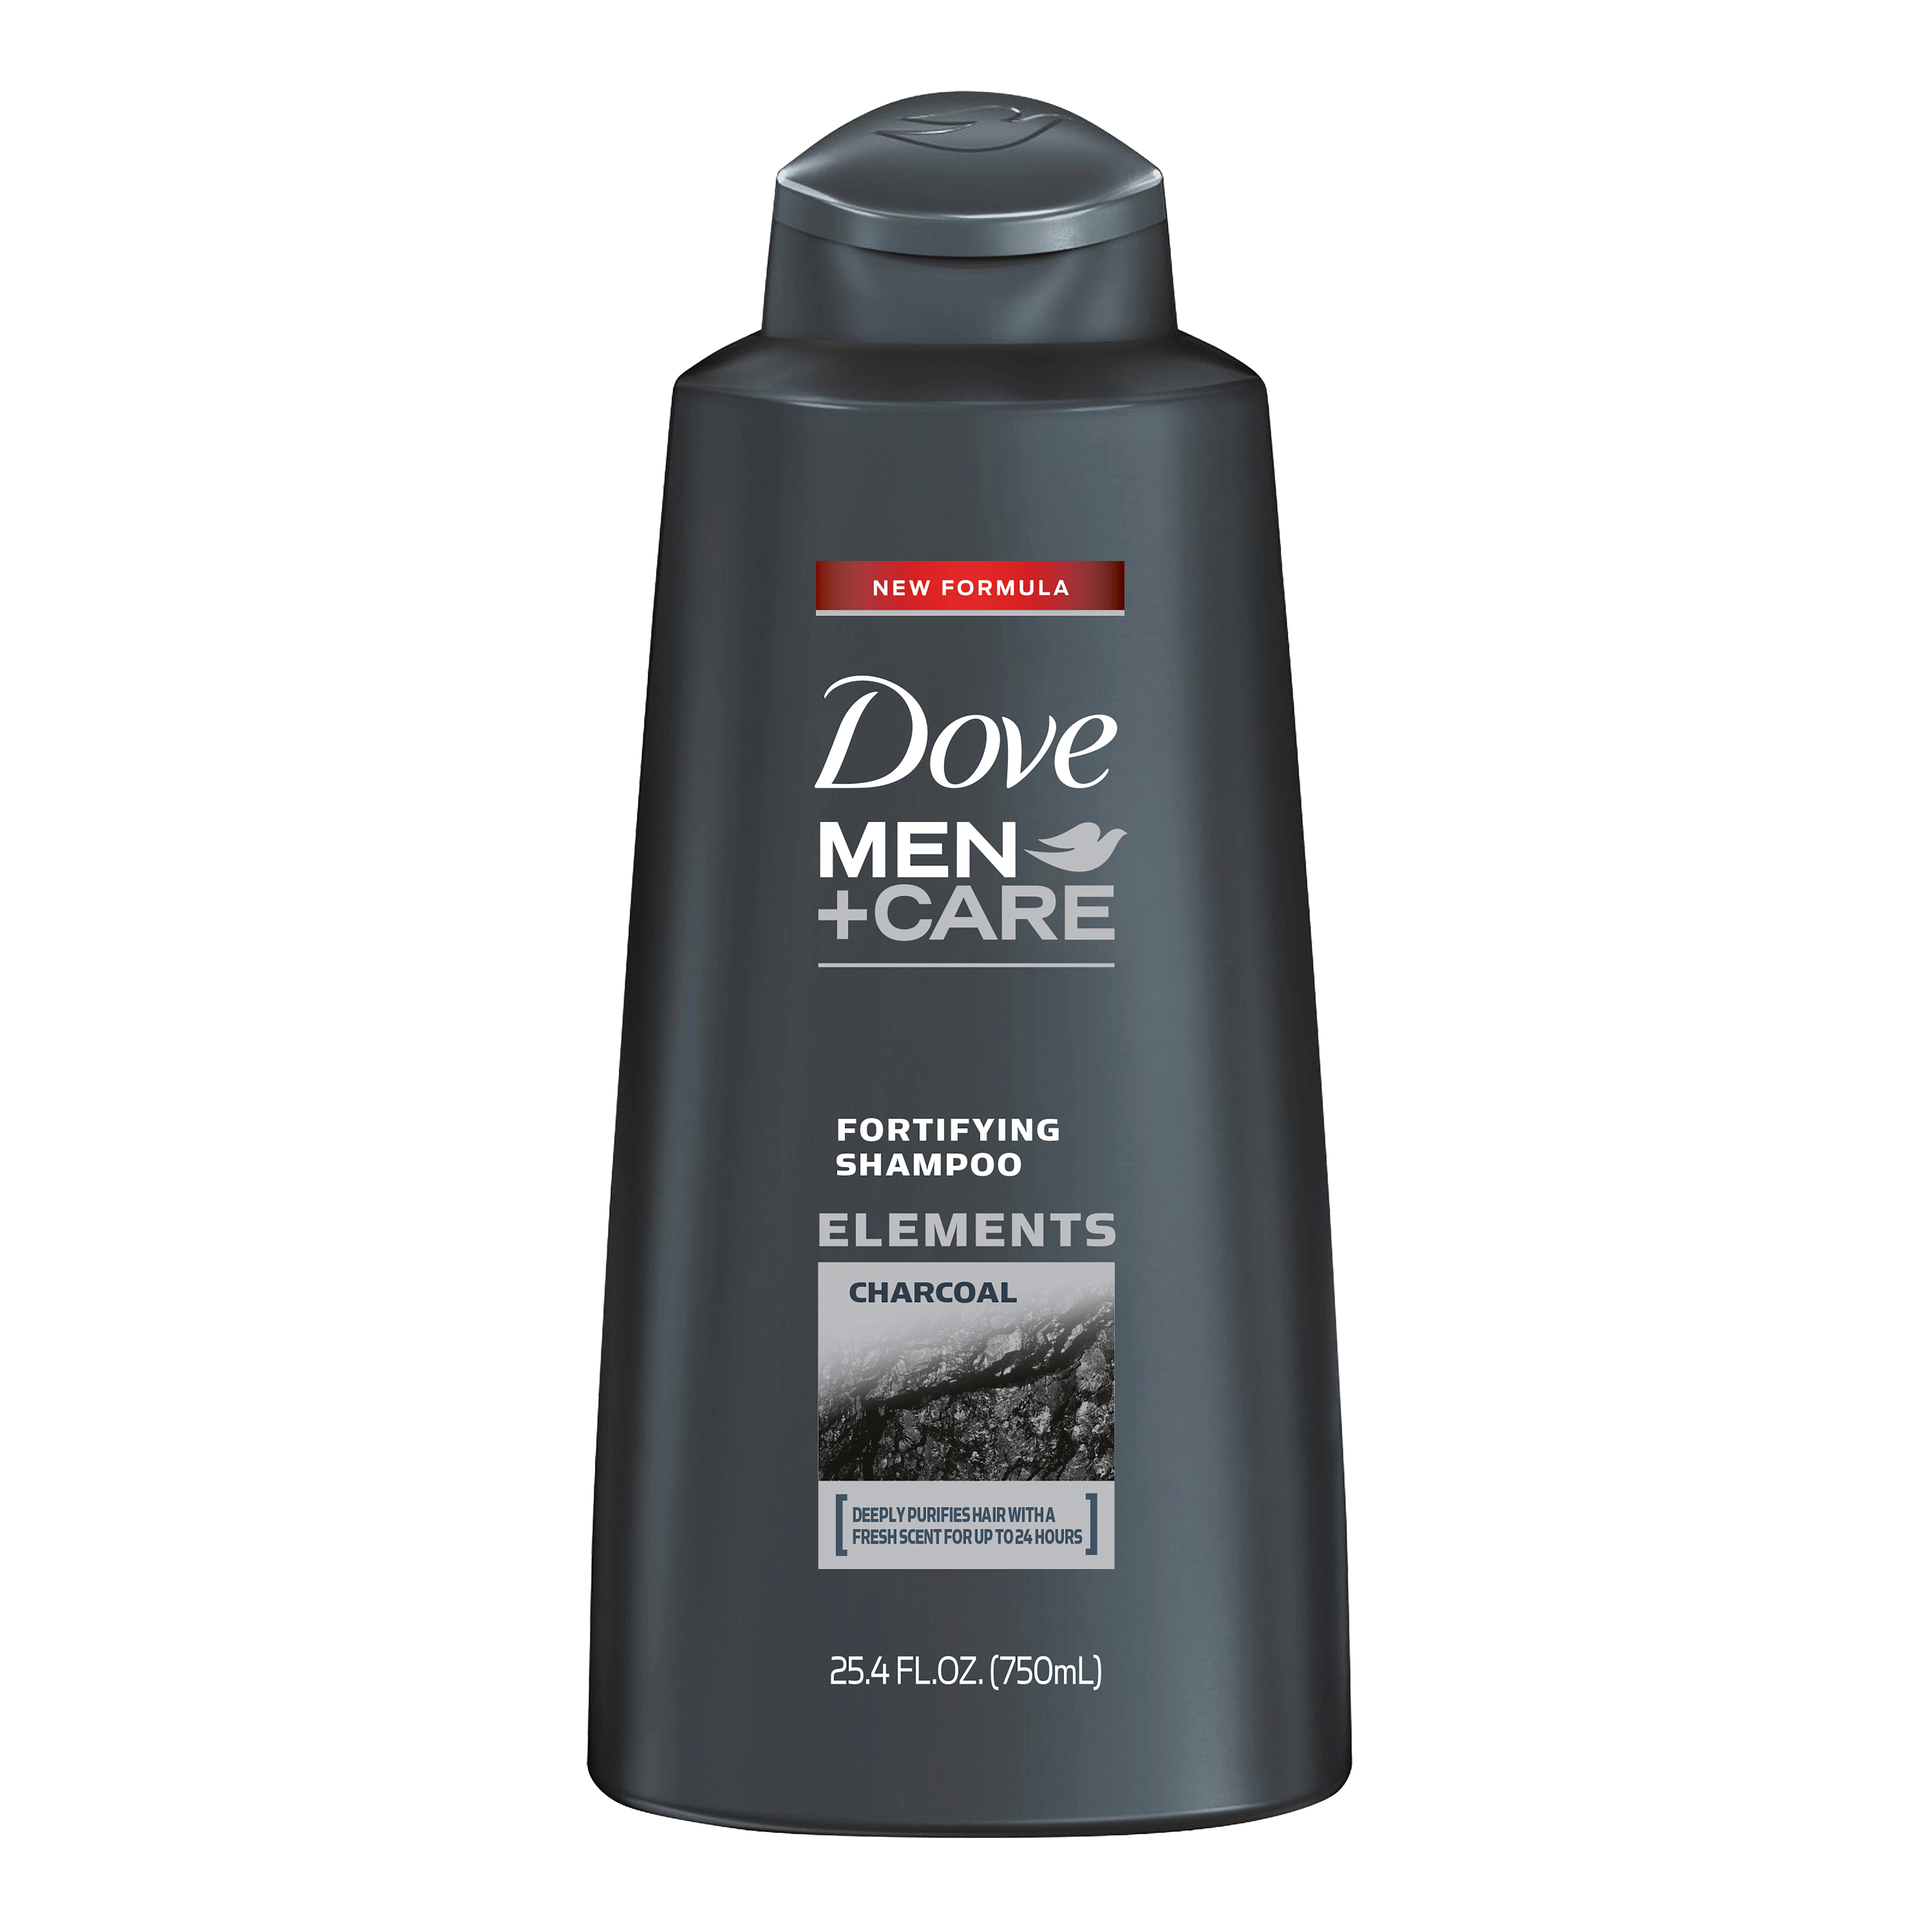 Men Care Elements Charcoal Fortifying Shampoo